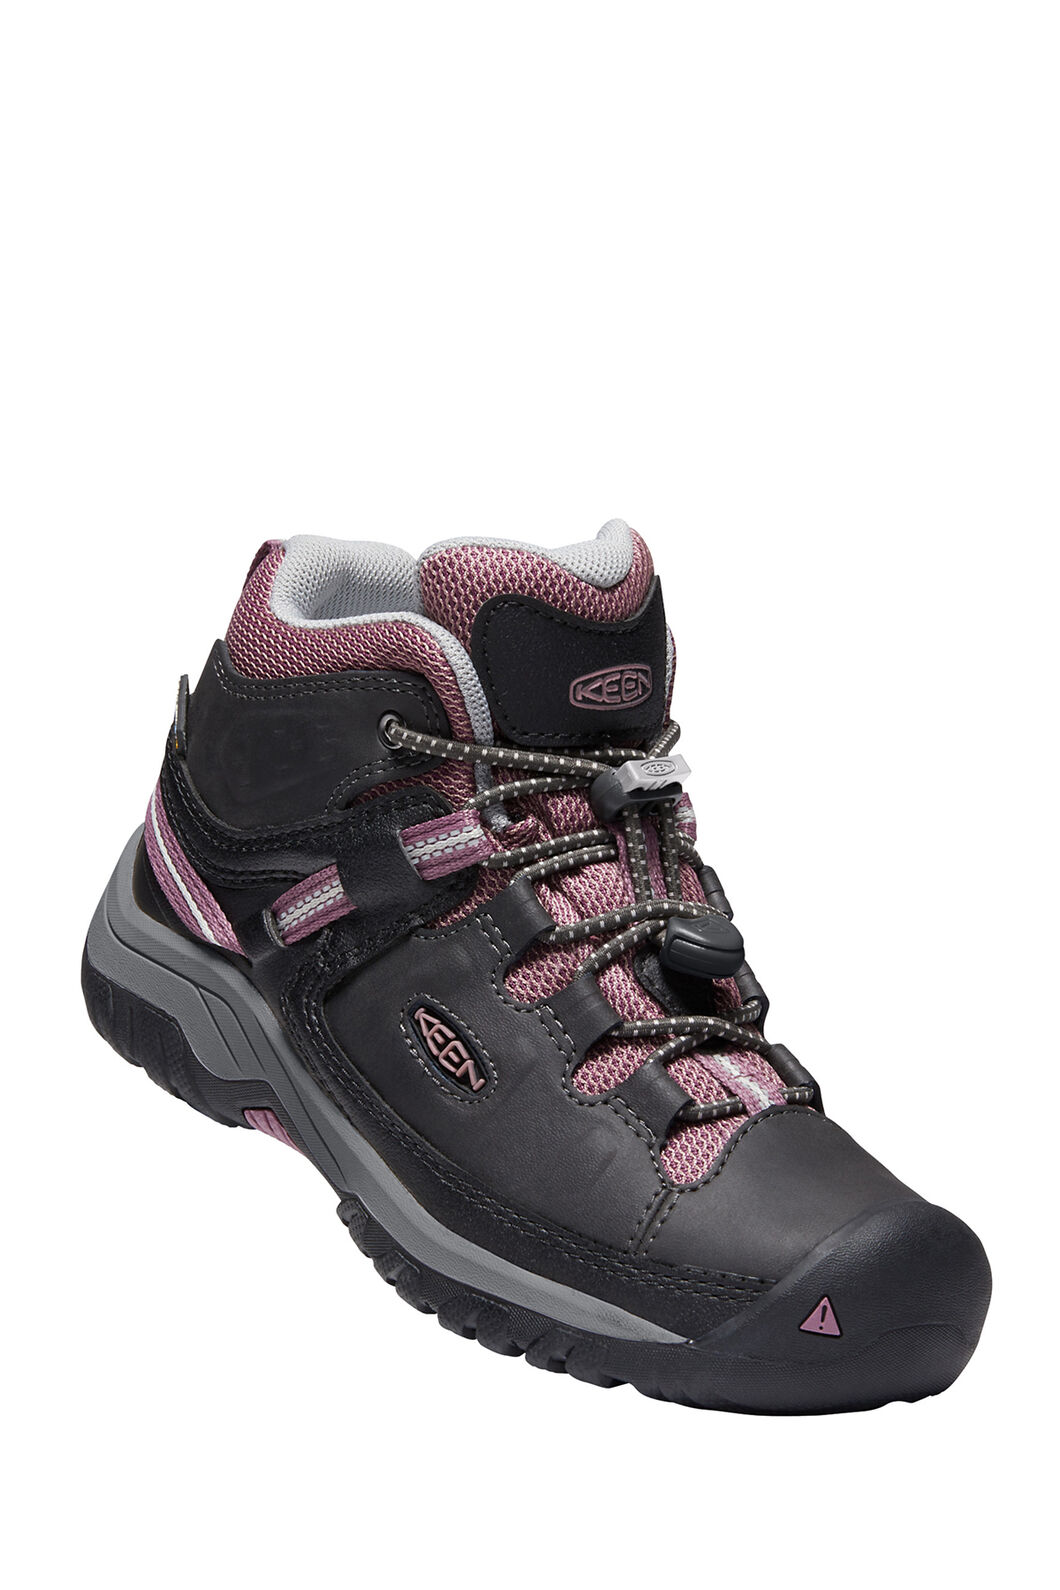 KEEN Targhee WP Hiking Boots — Youth, Raven/Tulipwood, hi-res